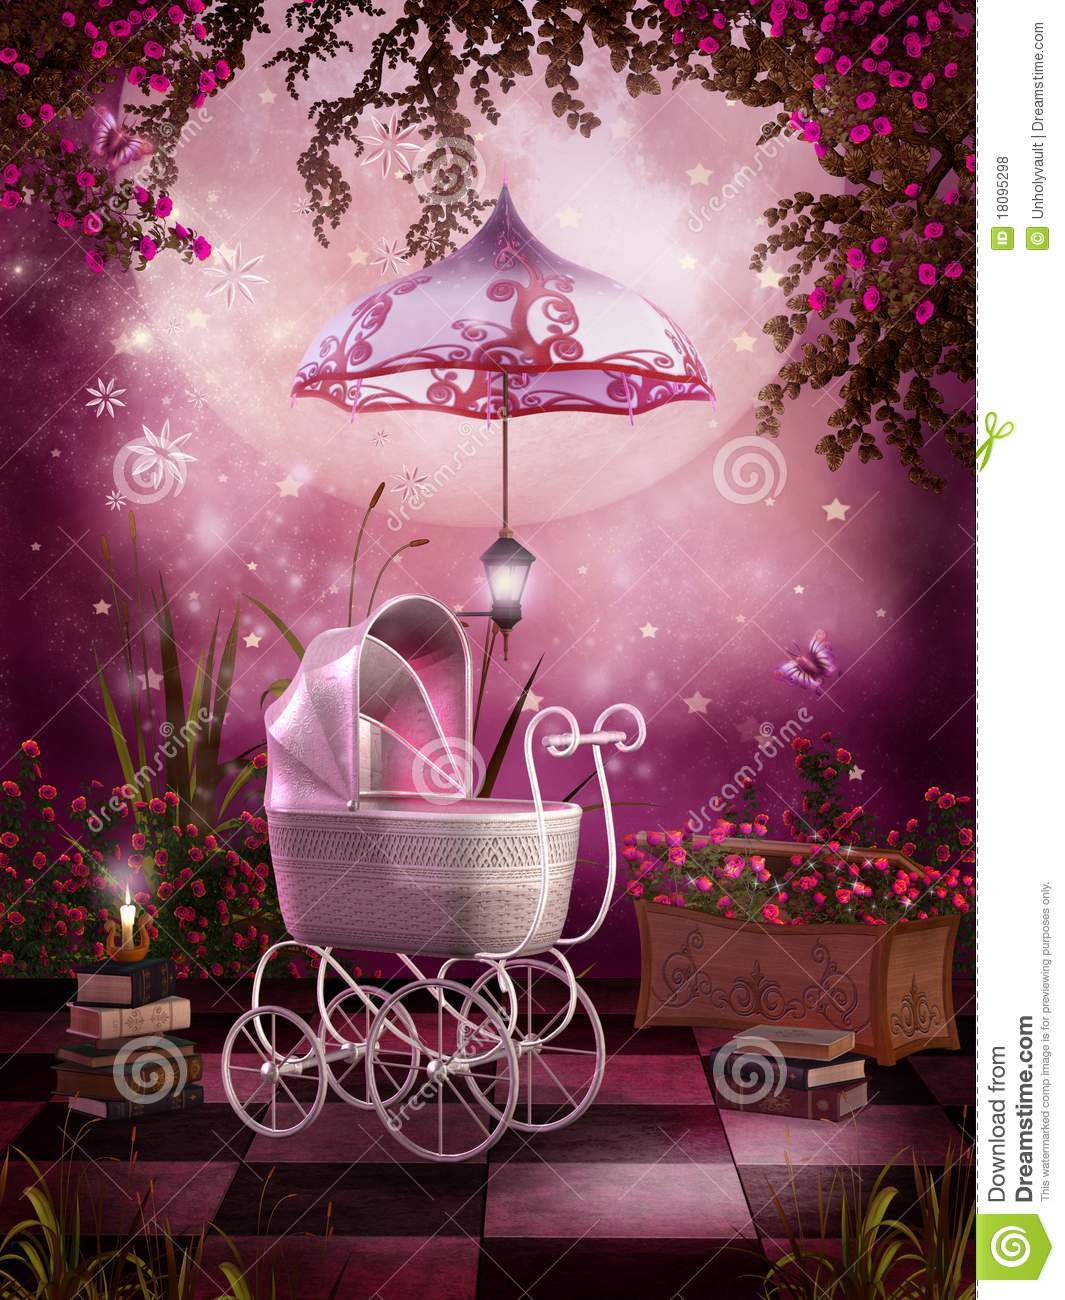 pink garden with a pram royalty free stock photos - image: 18095298